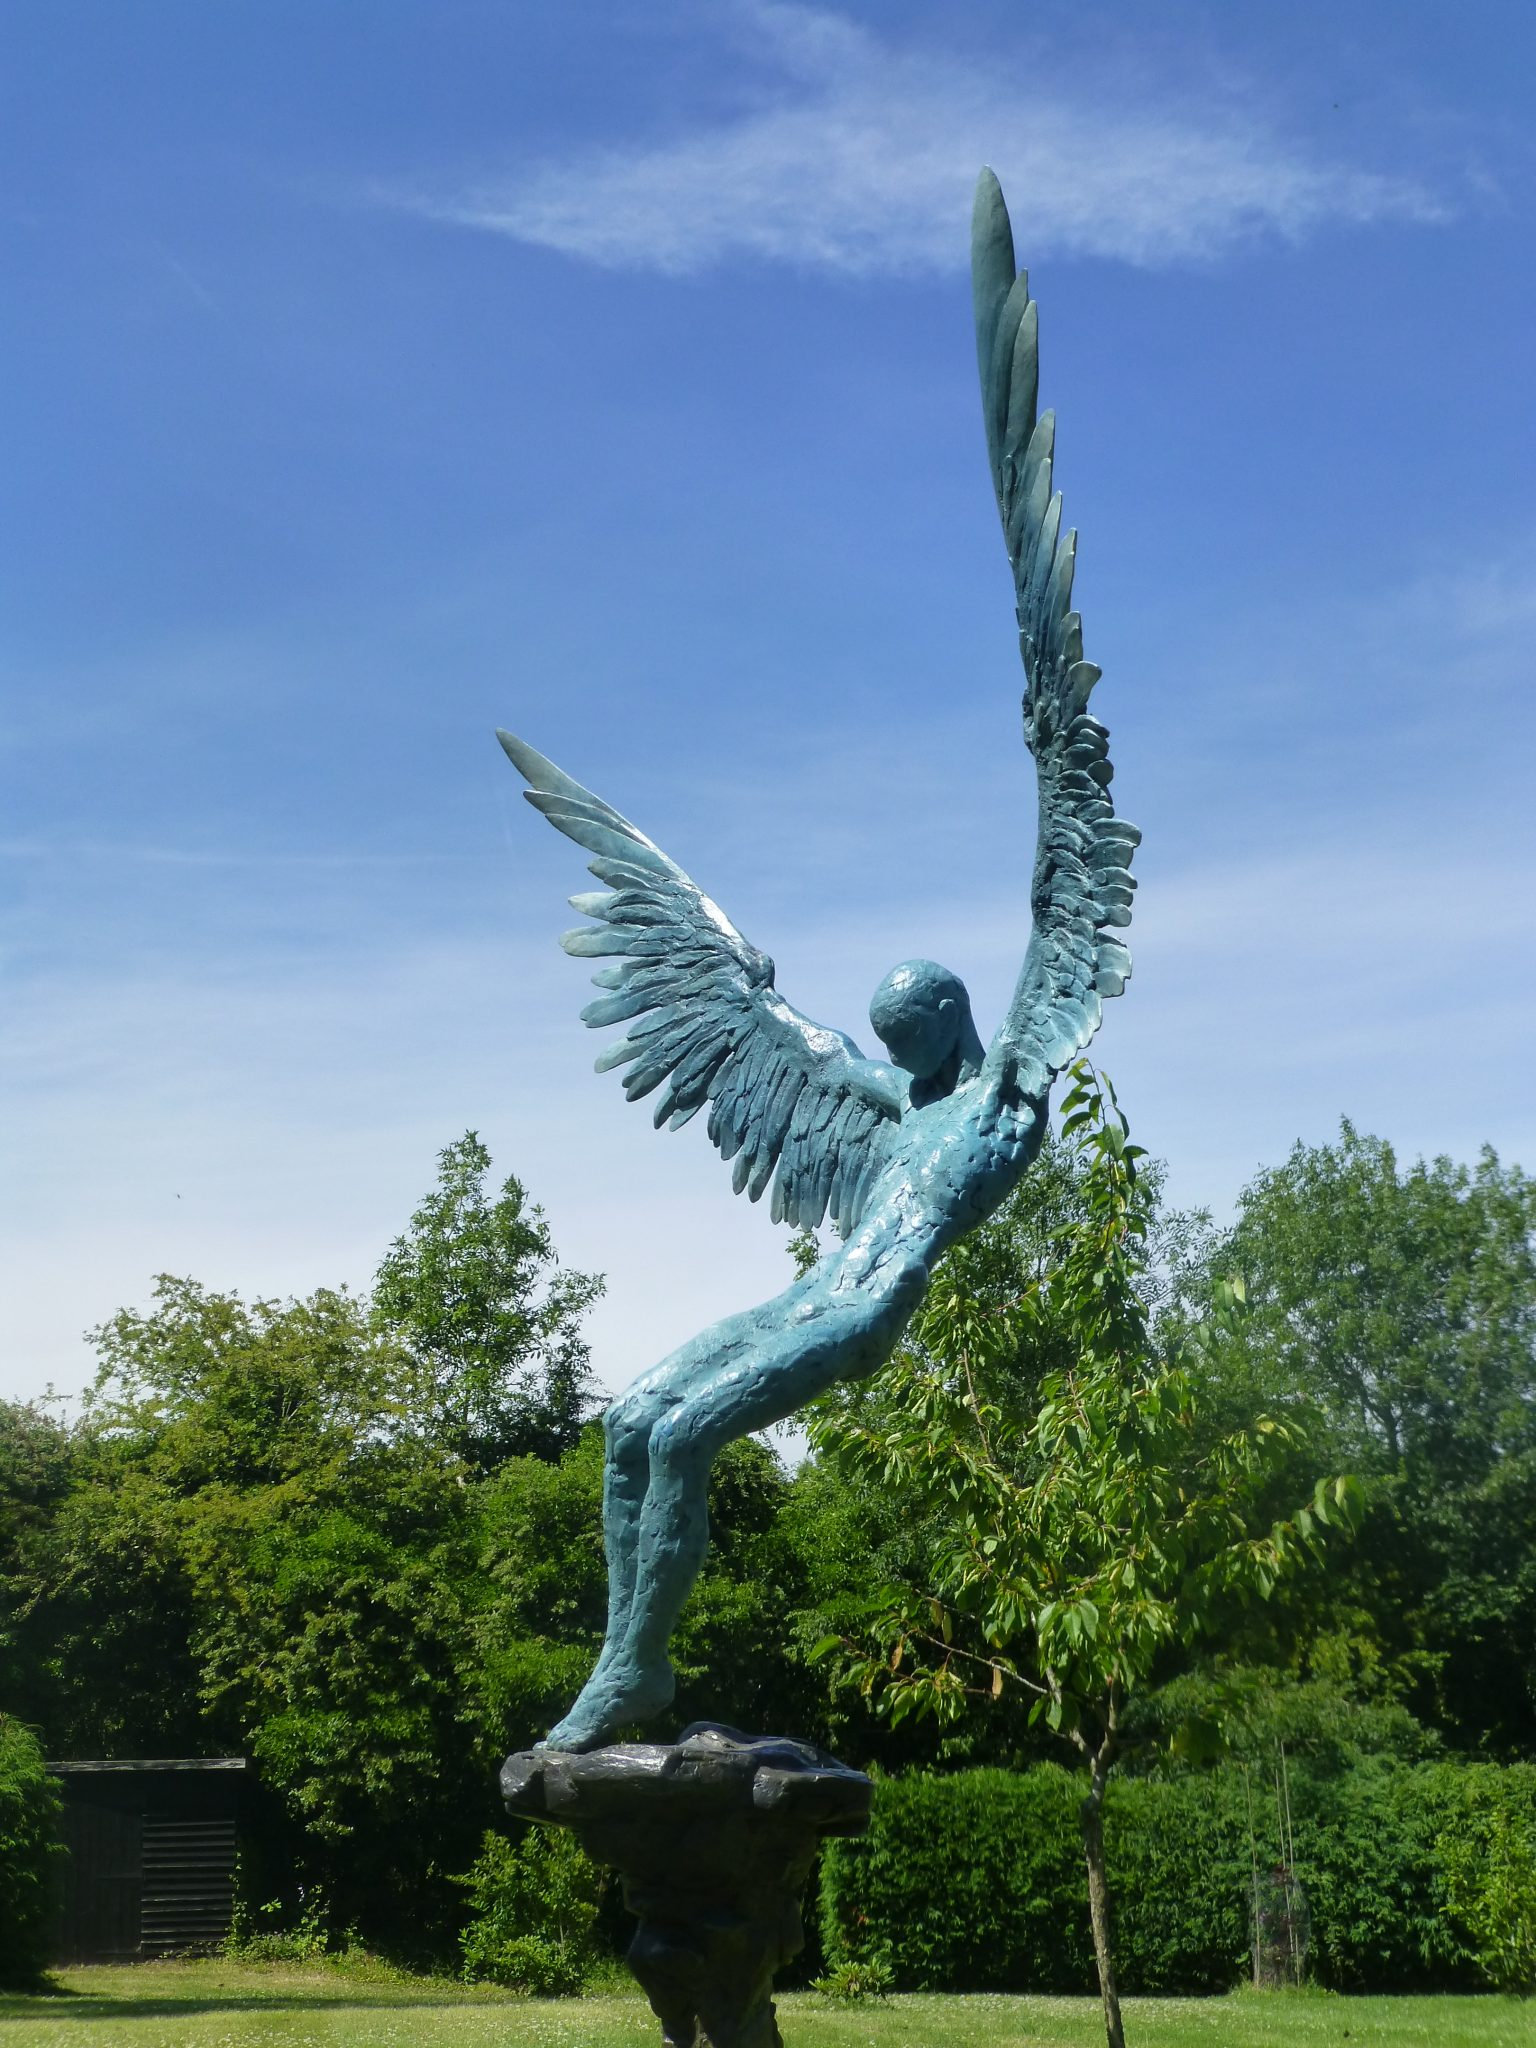 Sculpture in bronze of Icarus falling from the sky.